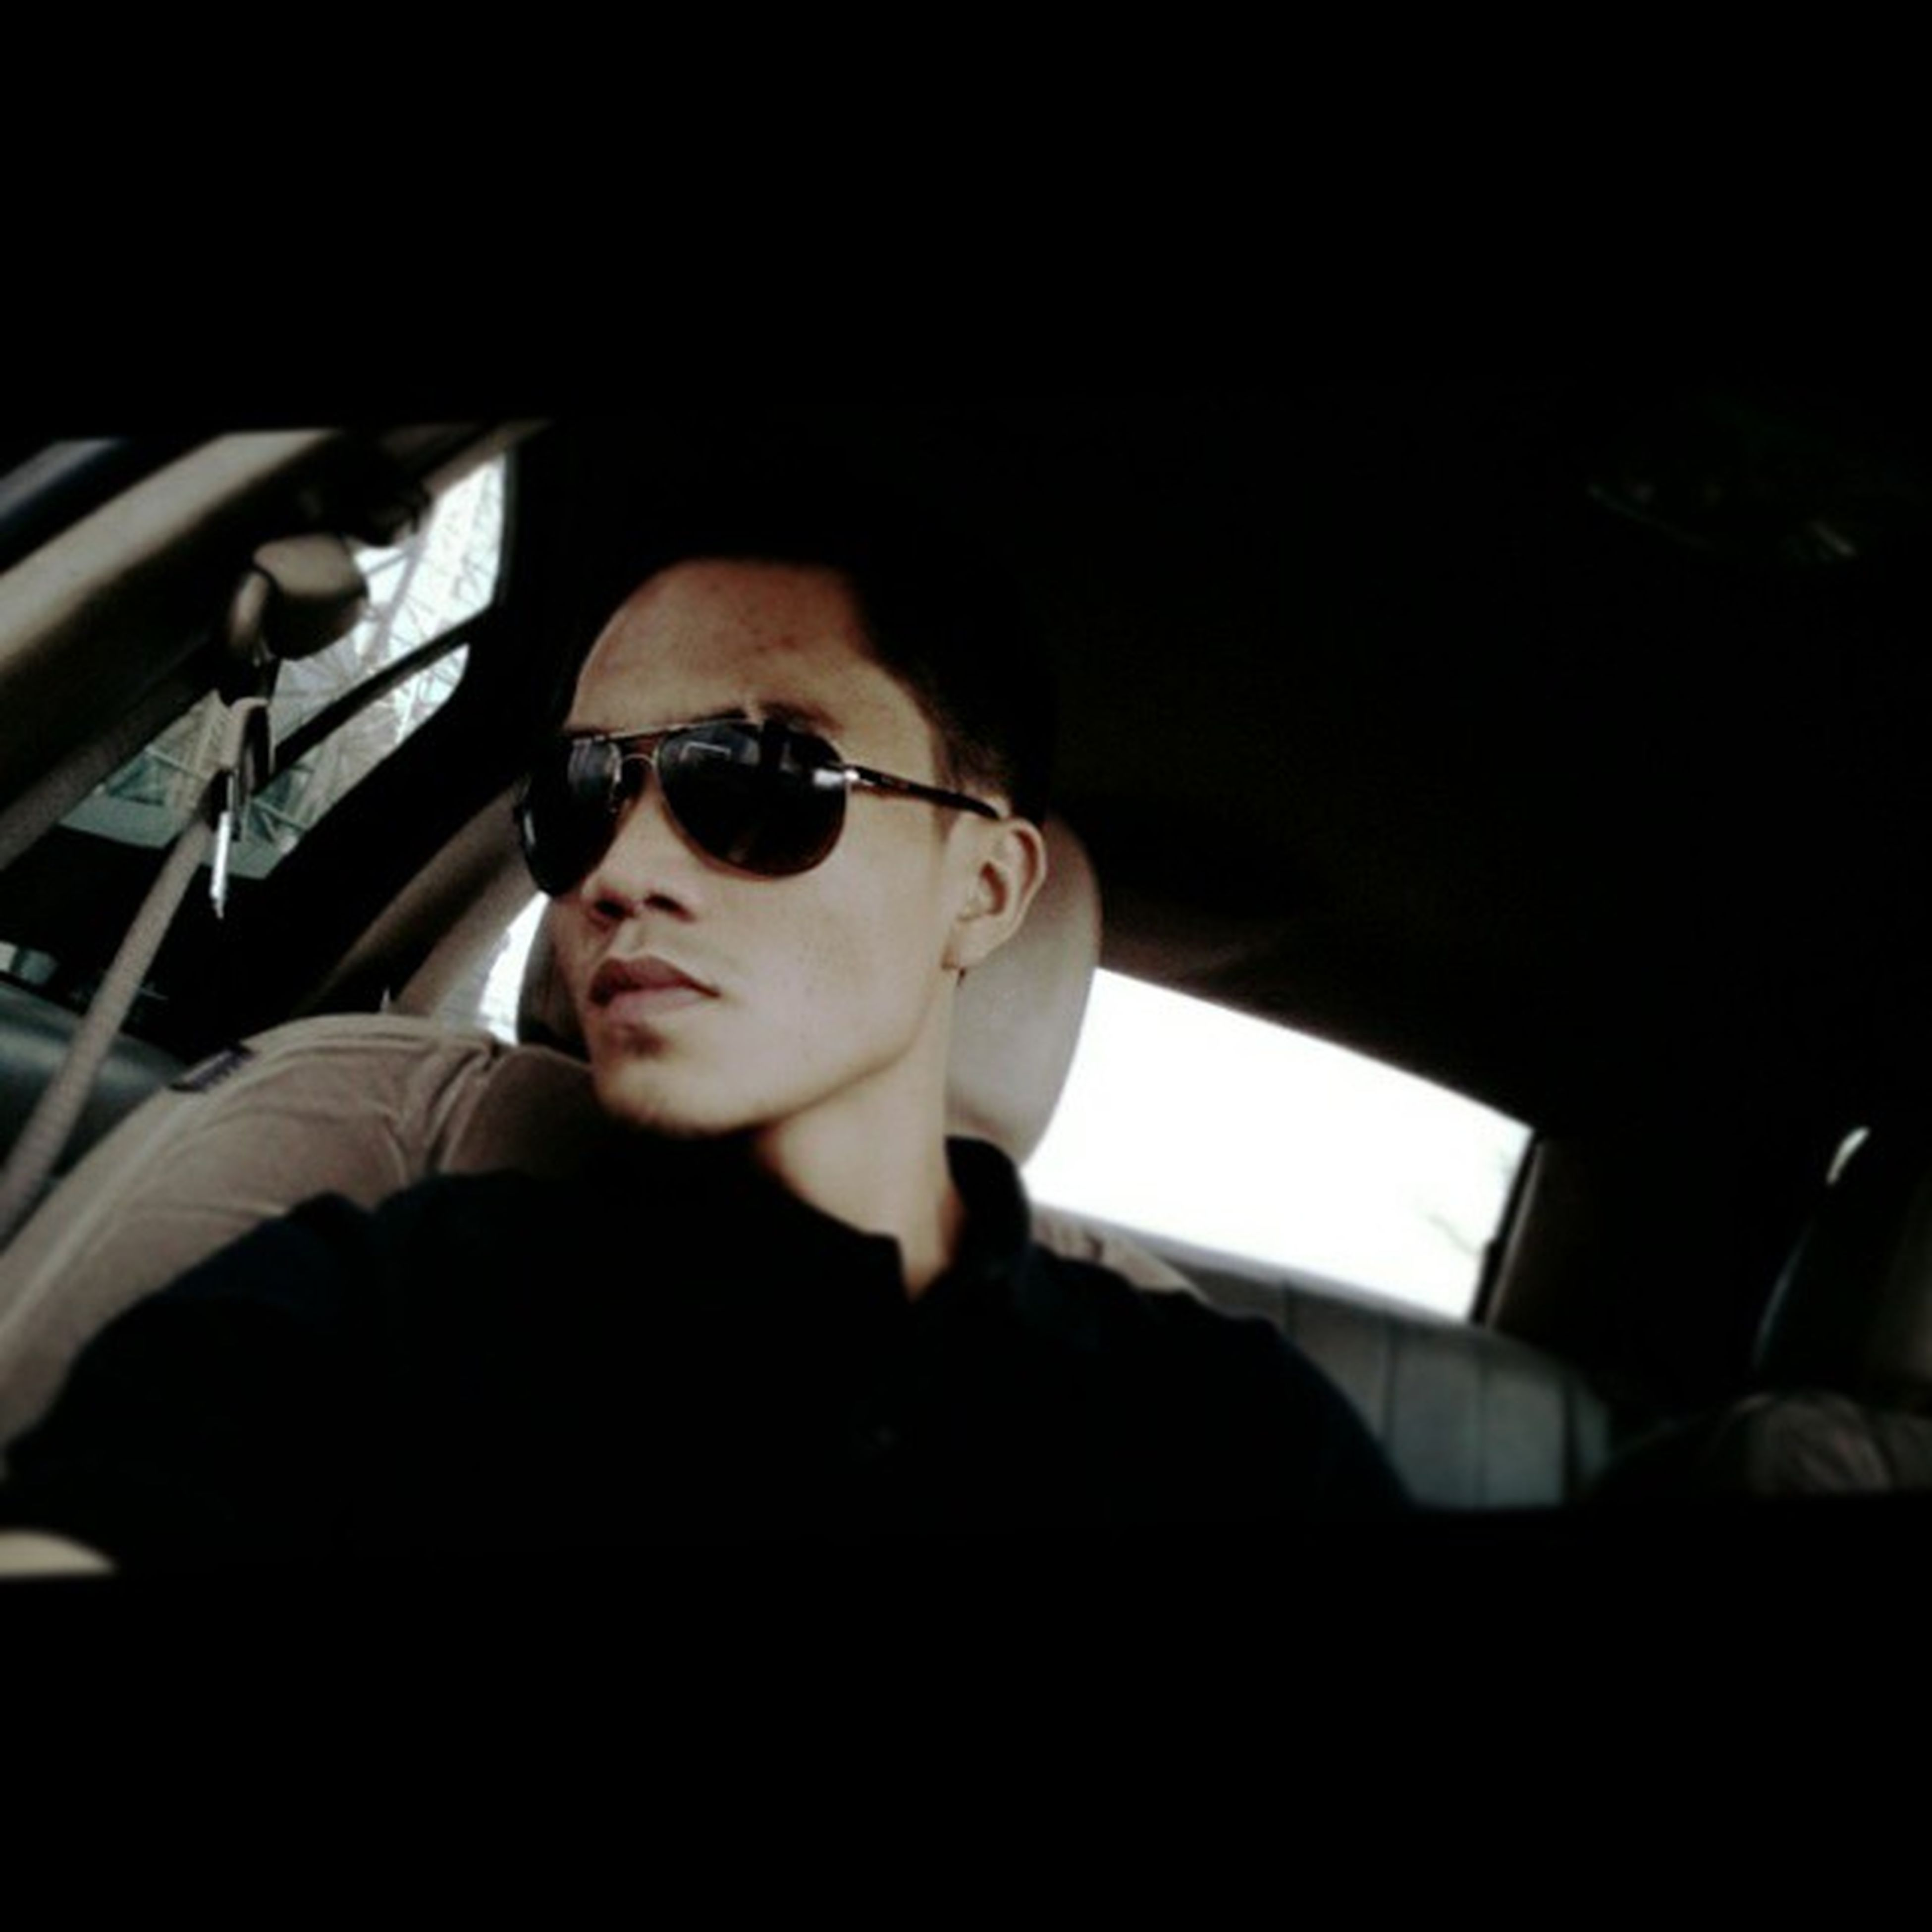 young adult, looking at camera, portrait, lifestyles, person, indoors, headshot, sunglasses, leisure activity, front view, transportation, vehicle interior, young men, car, car interior, mode of transport, head and shoulders